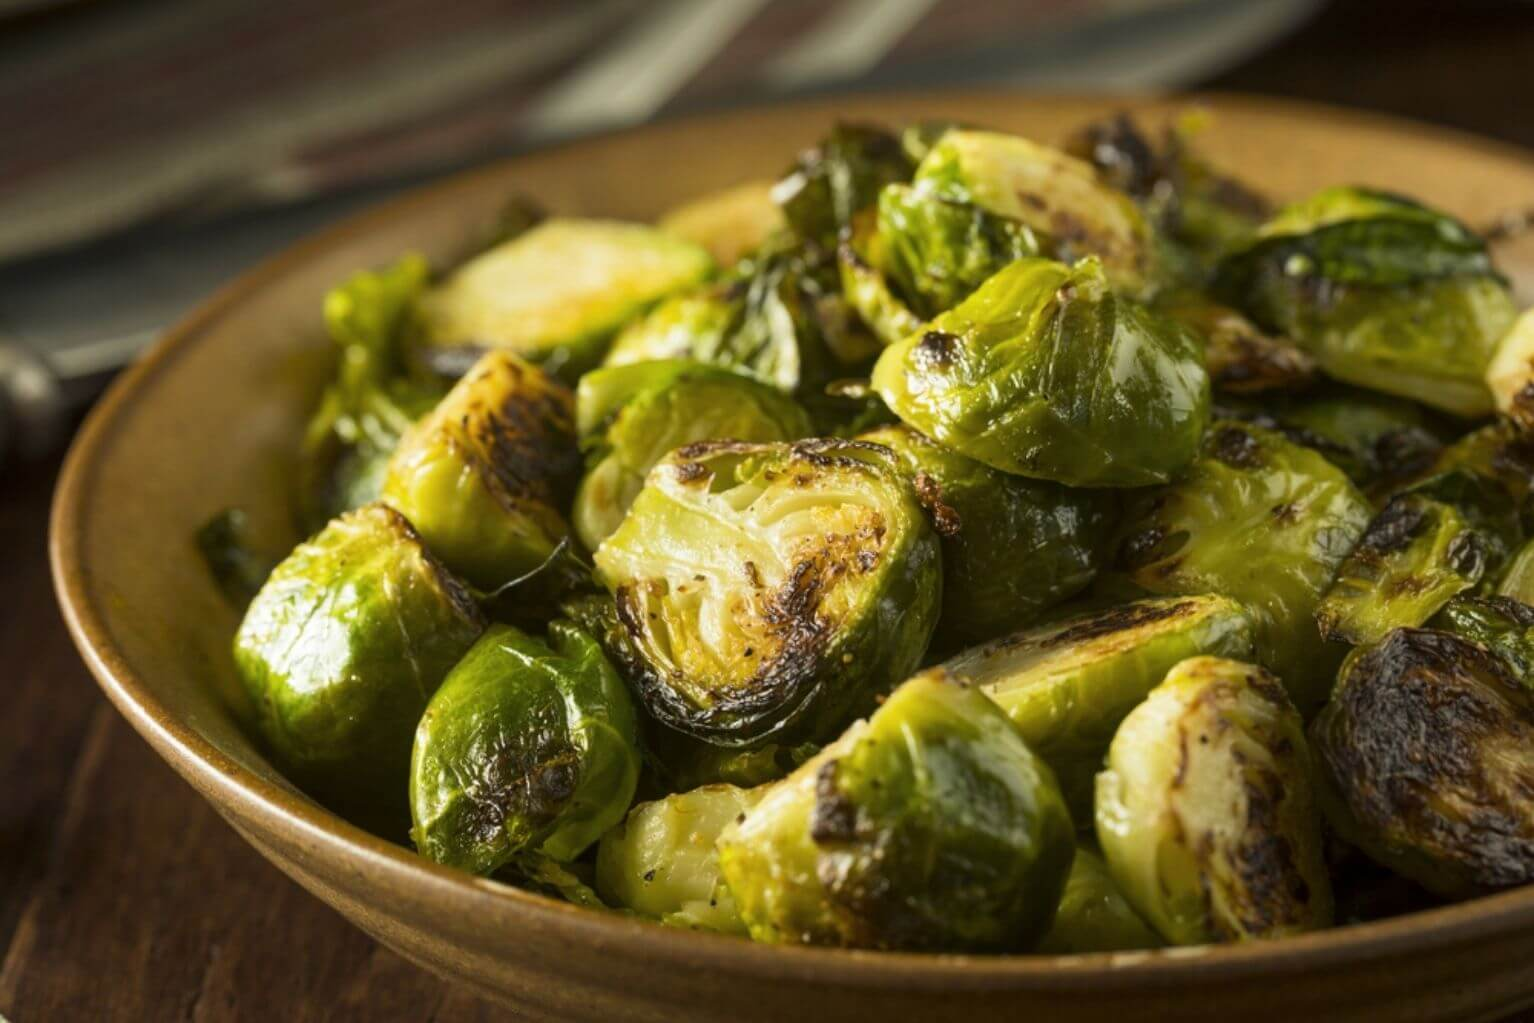 Tan bowl full of cooked brussel sprouts that are cut in half.